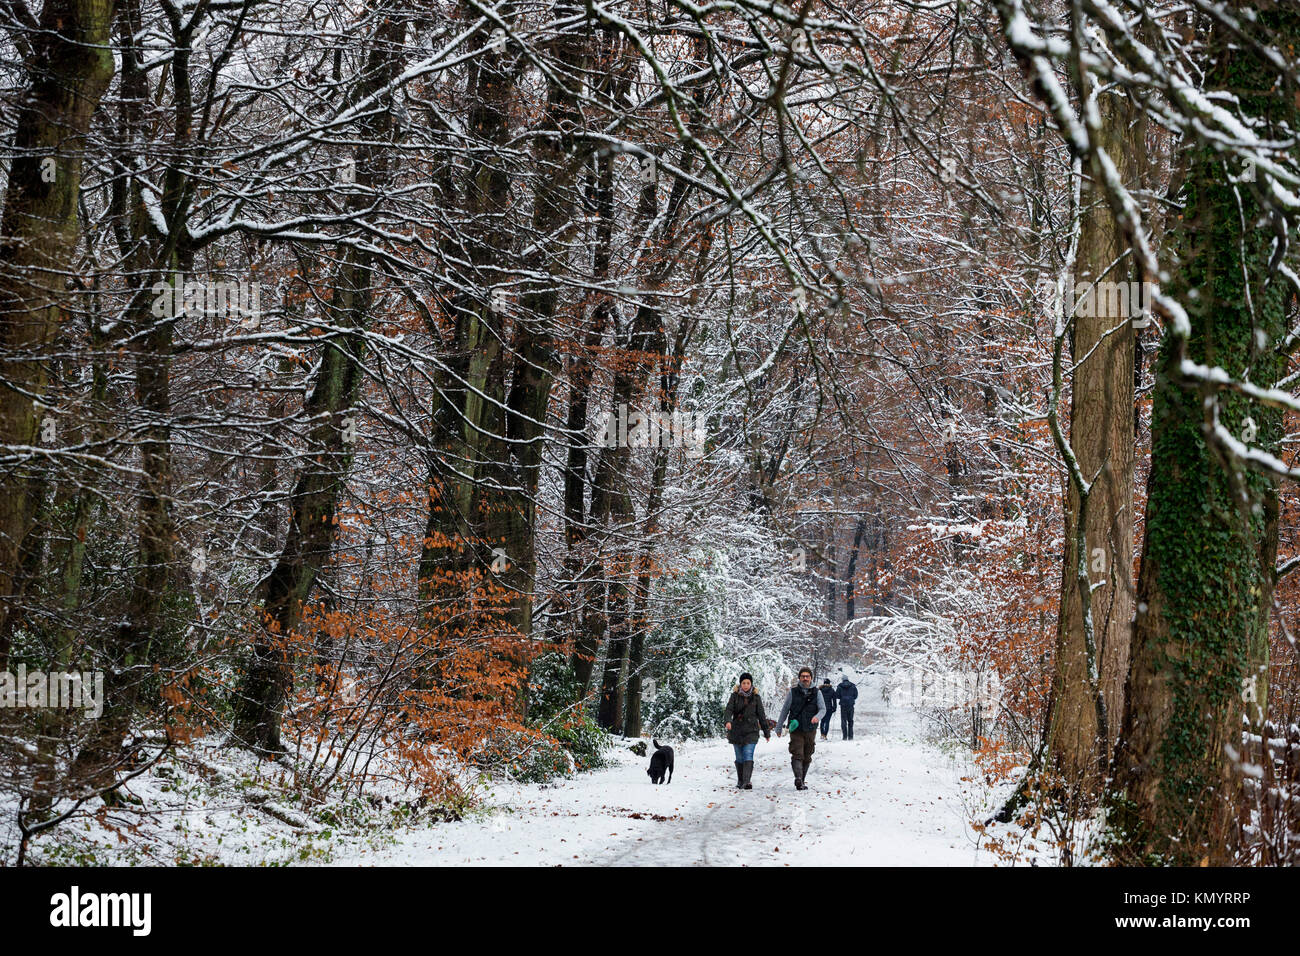 wintry-landscape-with-snow-and-trees-for